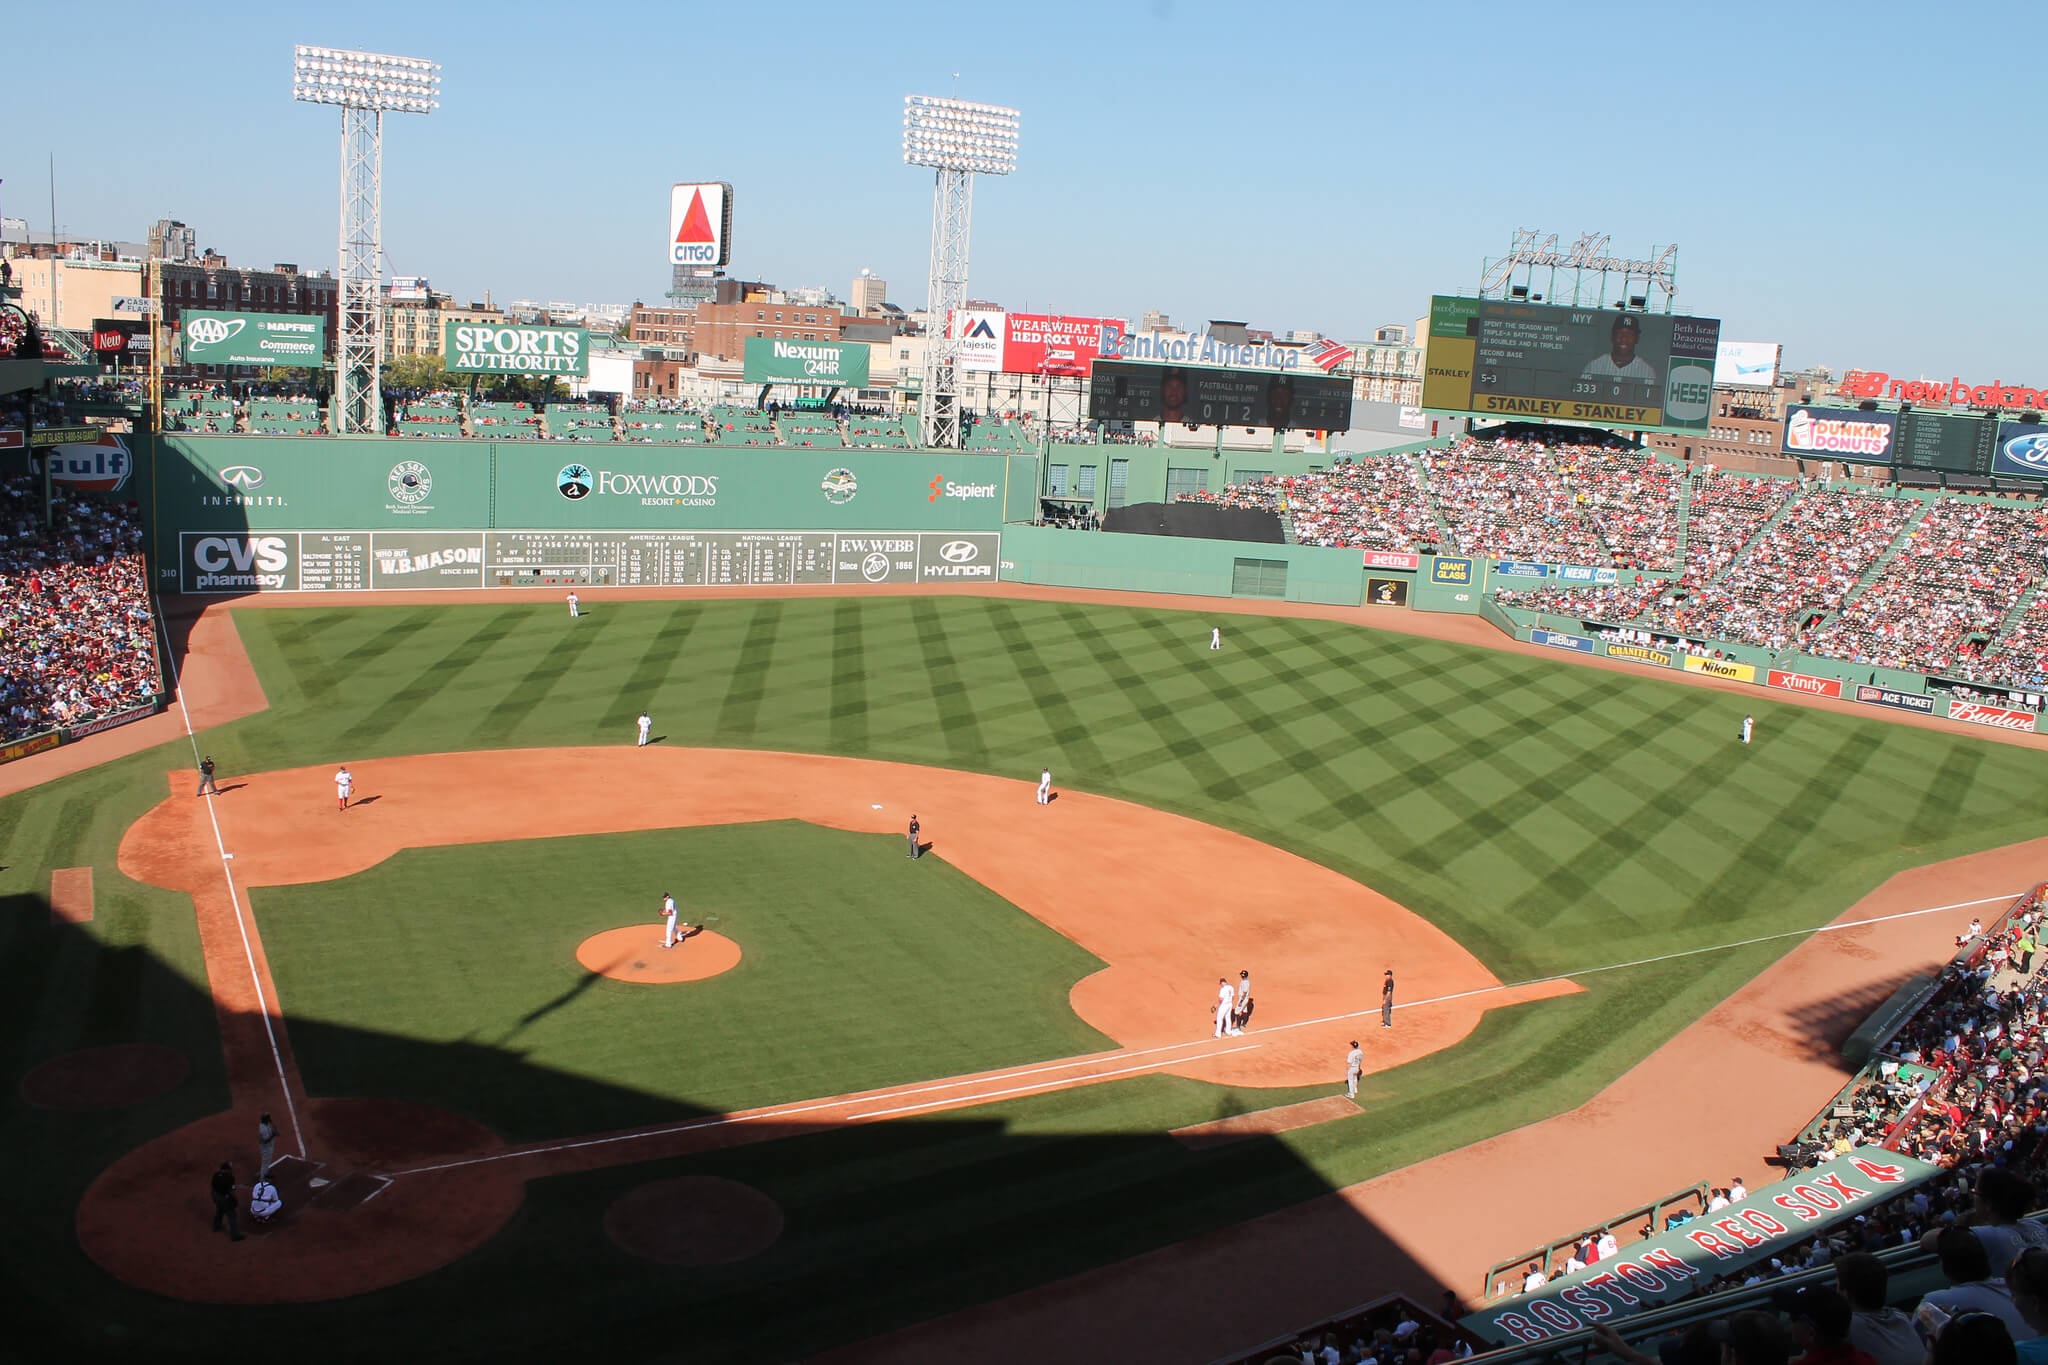 fenway park Things to do in Boston